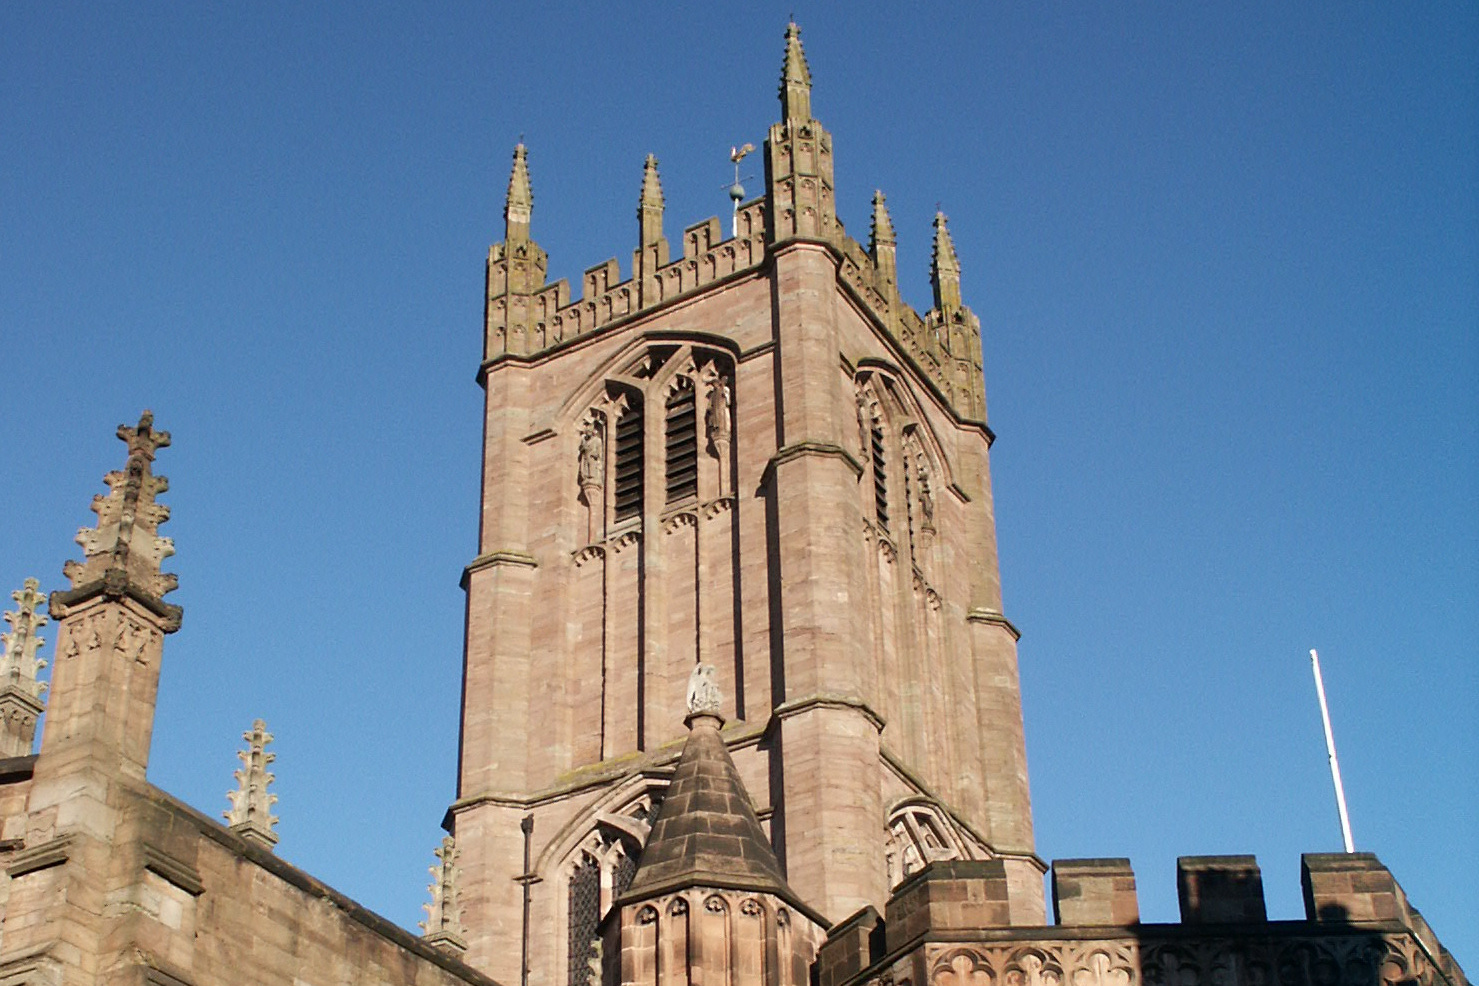 The 15th century tower of St Laurence Ludlow